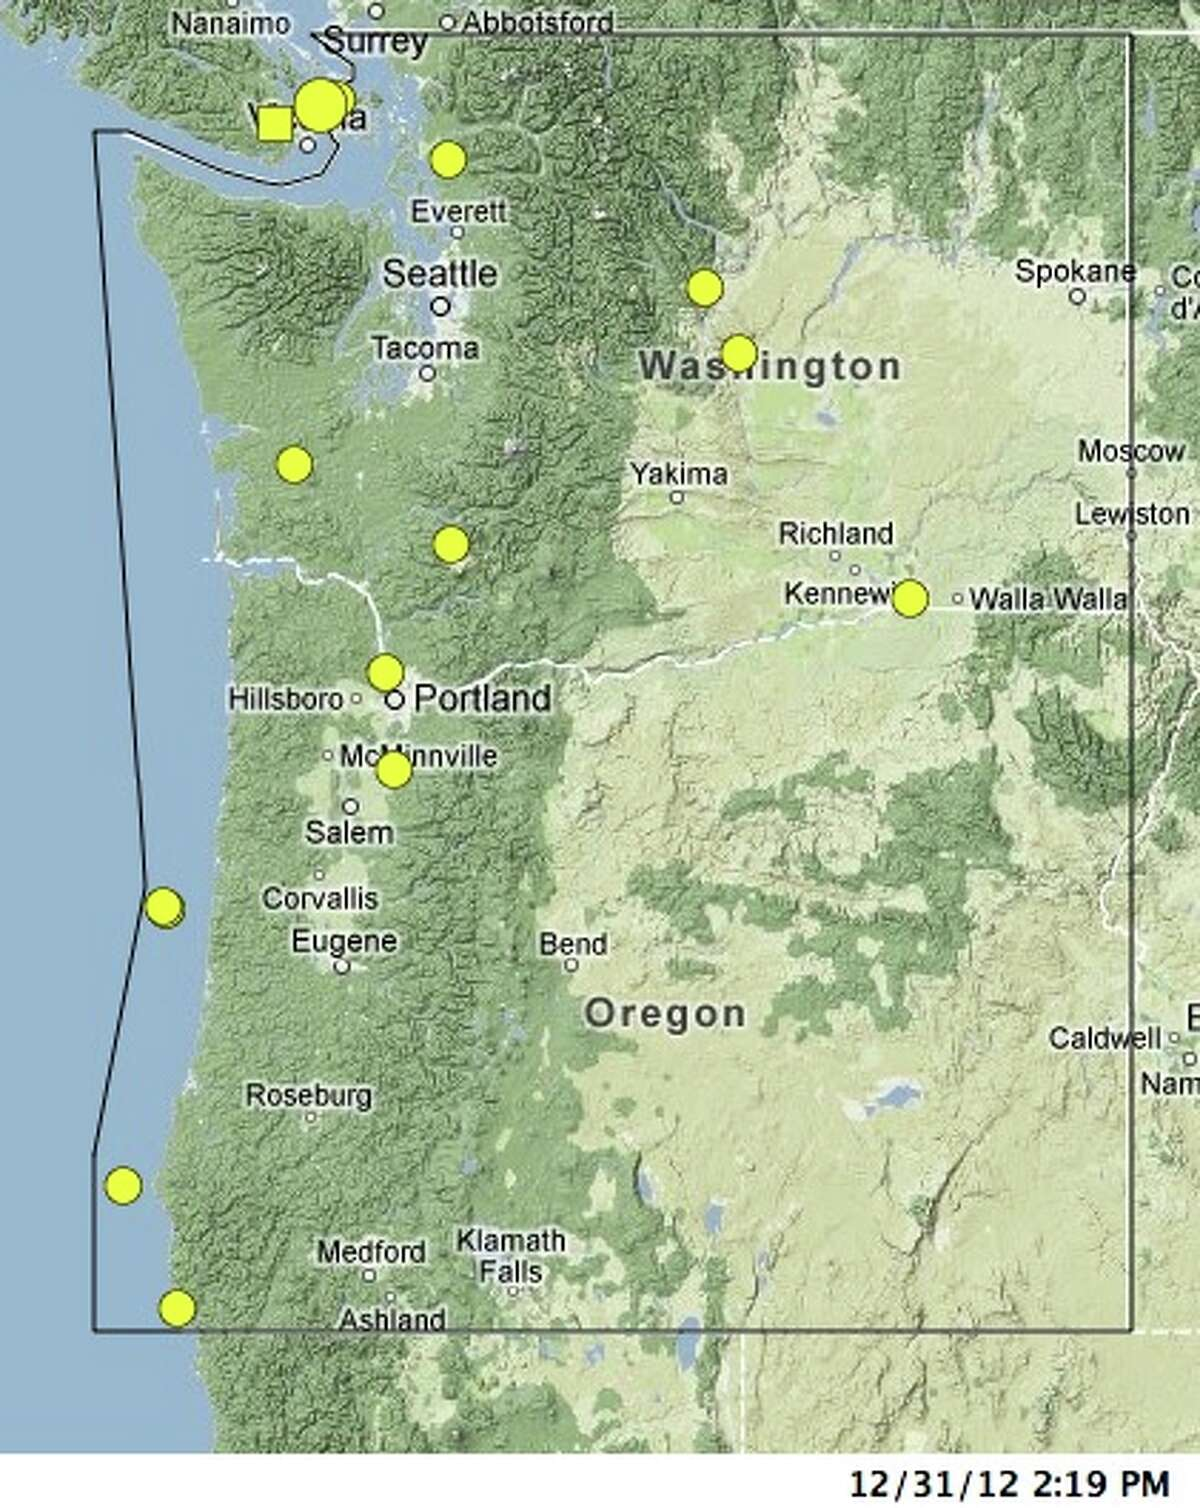 Here are the locations of all events larger than magnitude 3 in 2012. The earthquakes are spread across the region, mostly on the western side, the Pacific Northwest Seismic Network said. The largest event of the year was a magnitude 4 less than a mile inside Washington state near Victoria, B.C., in December.